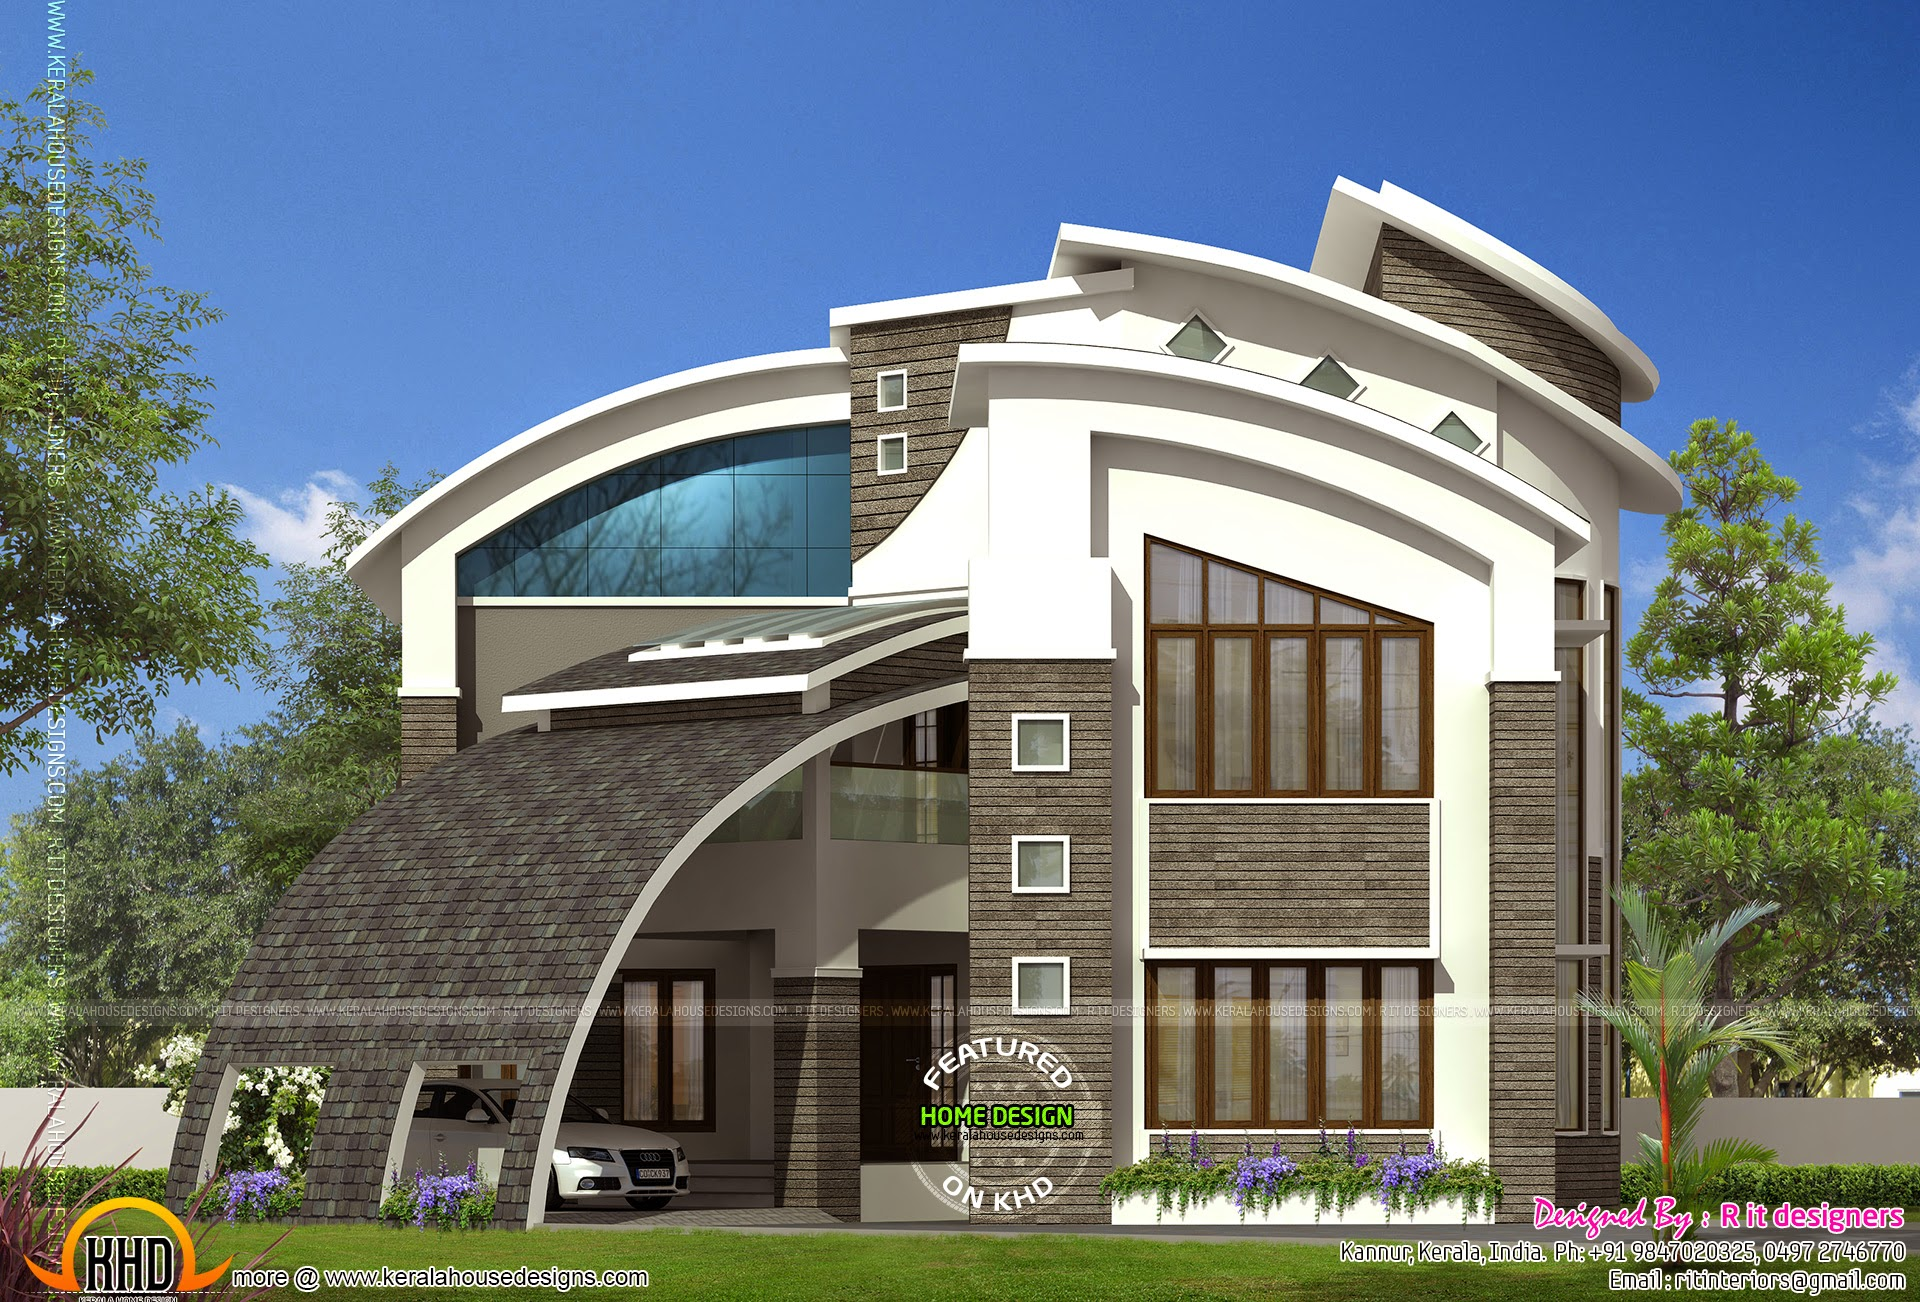 Most modern contemporary house design kerala home design New model contemporary house